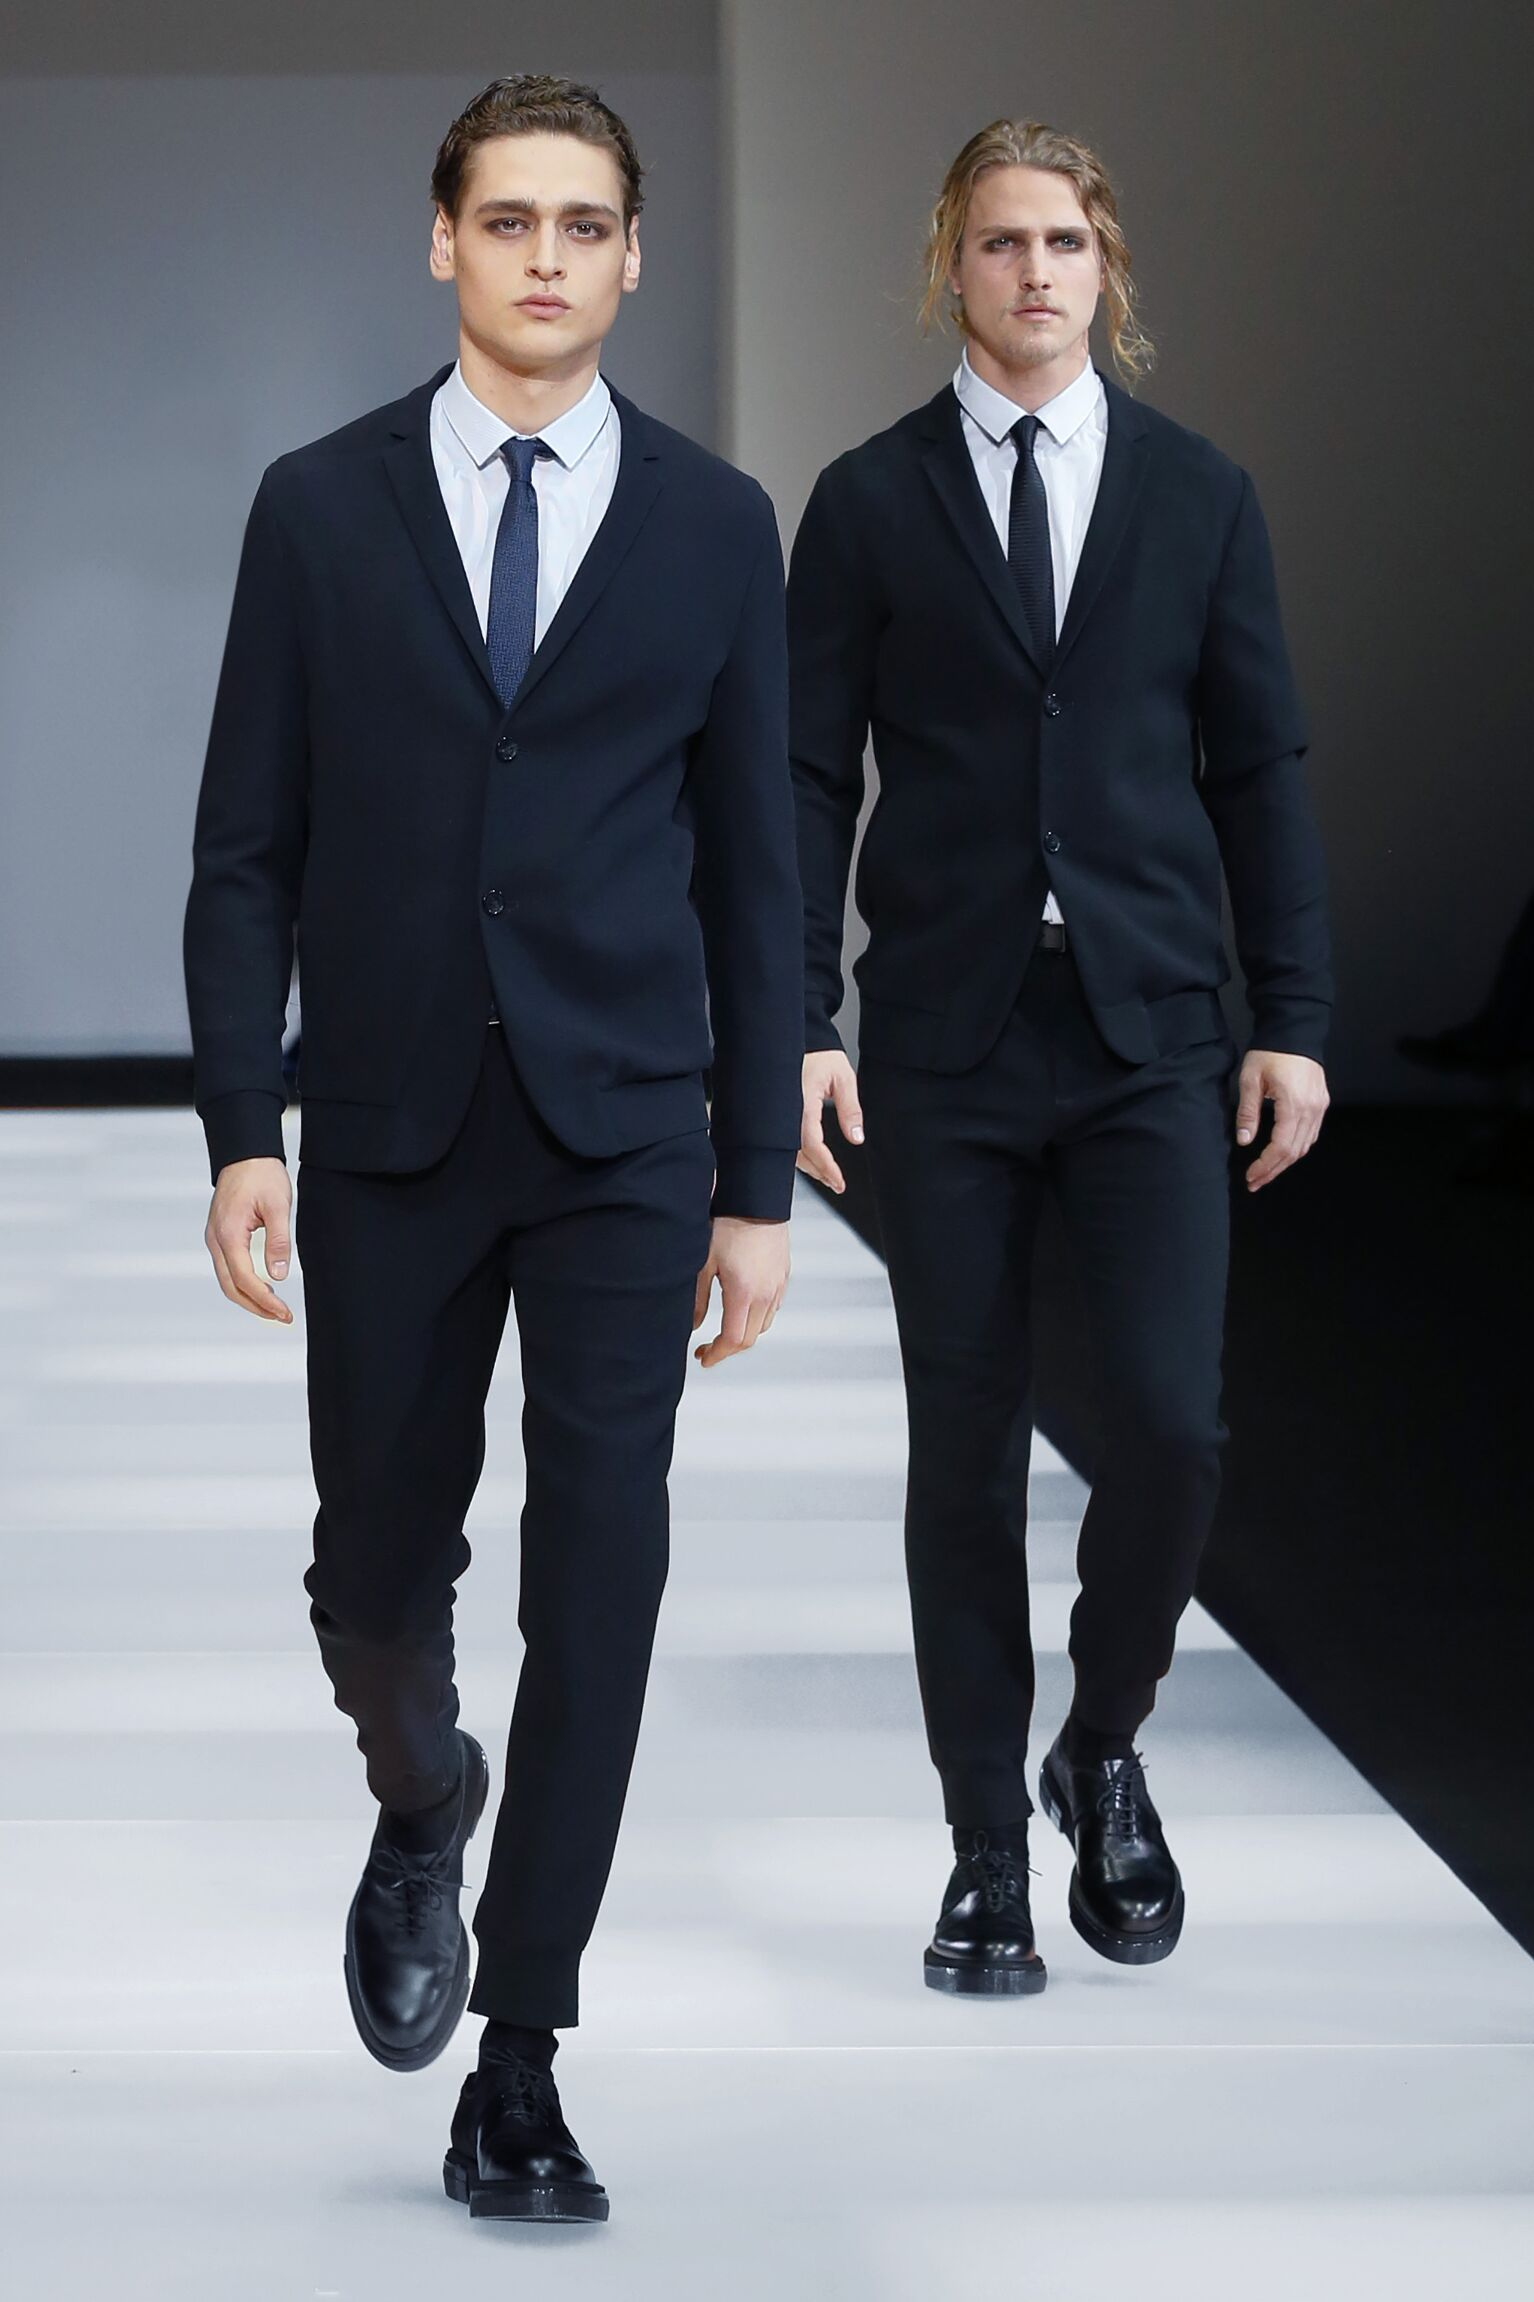 Autumn Emporio Armani Collection Fashion Man